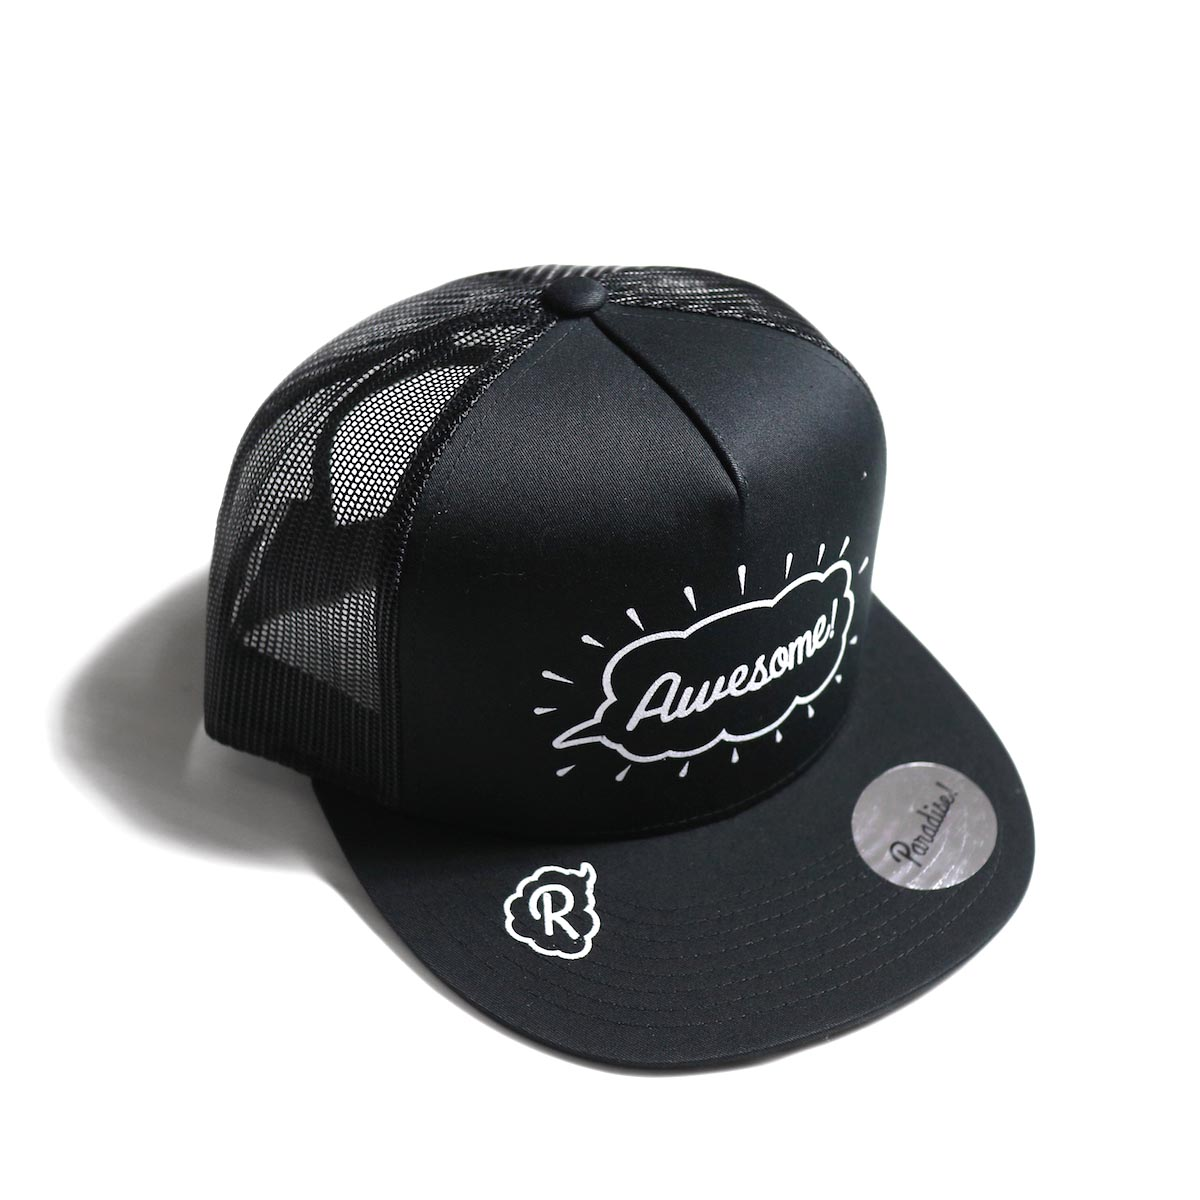 Paradise! / mesh cap (Awesome) -BLK×BLK